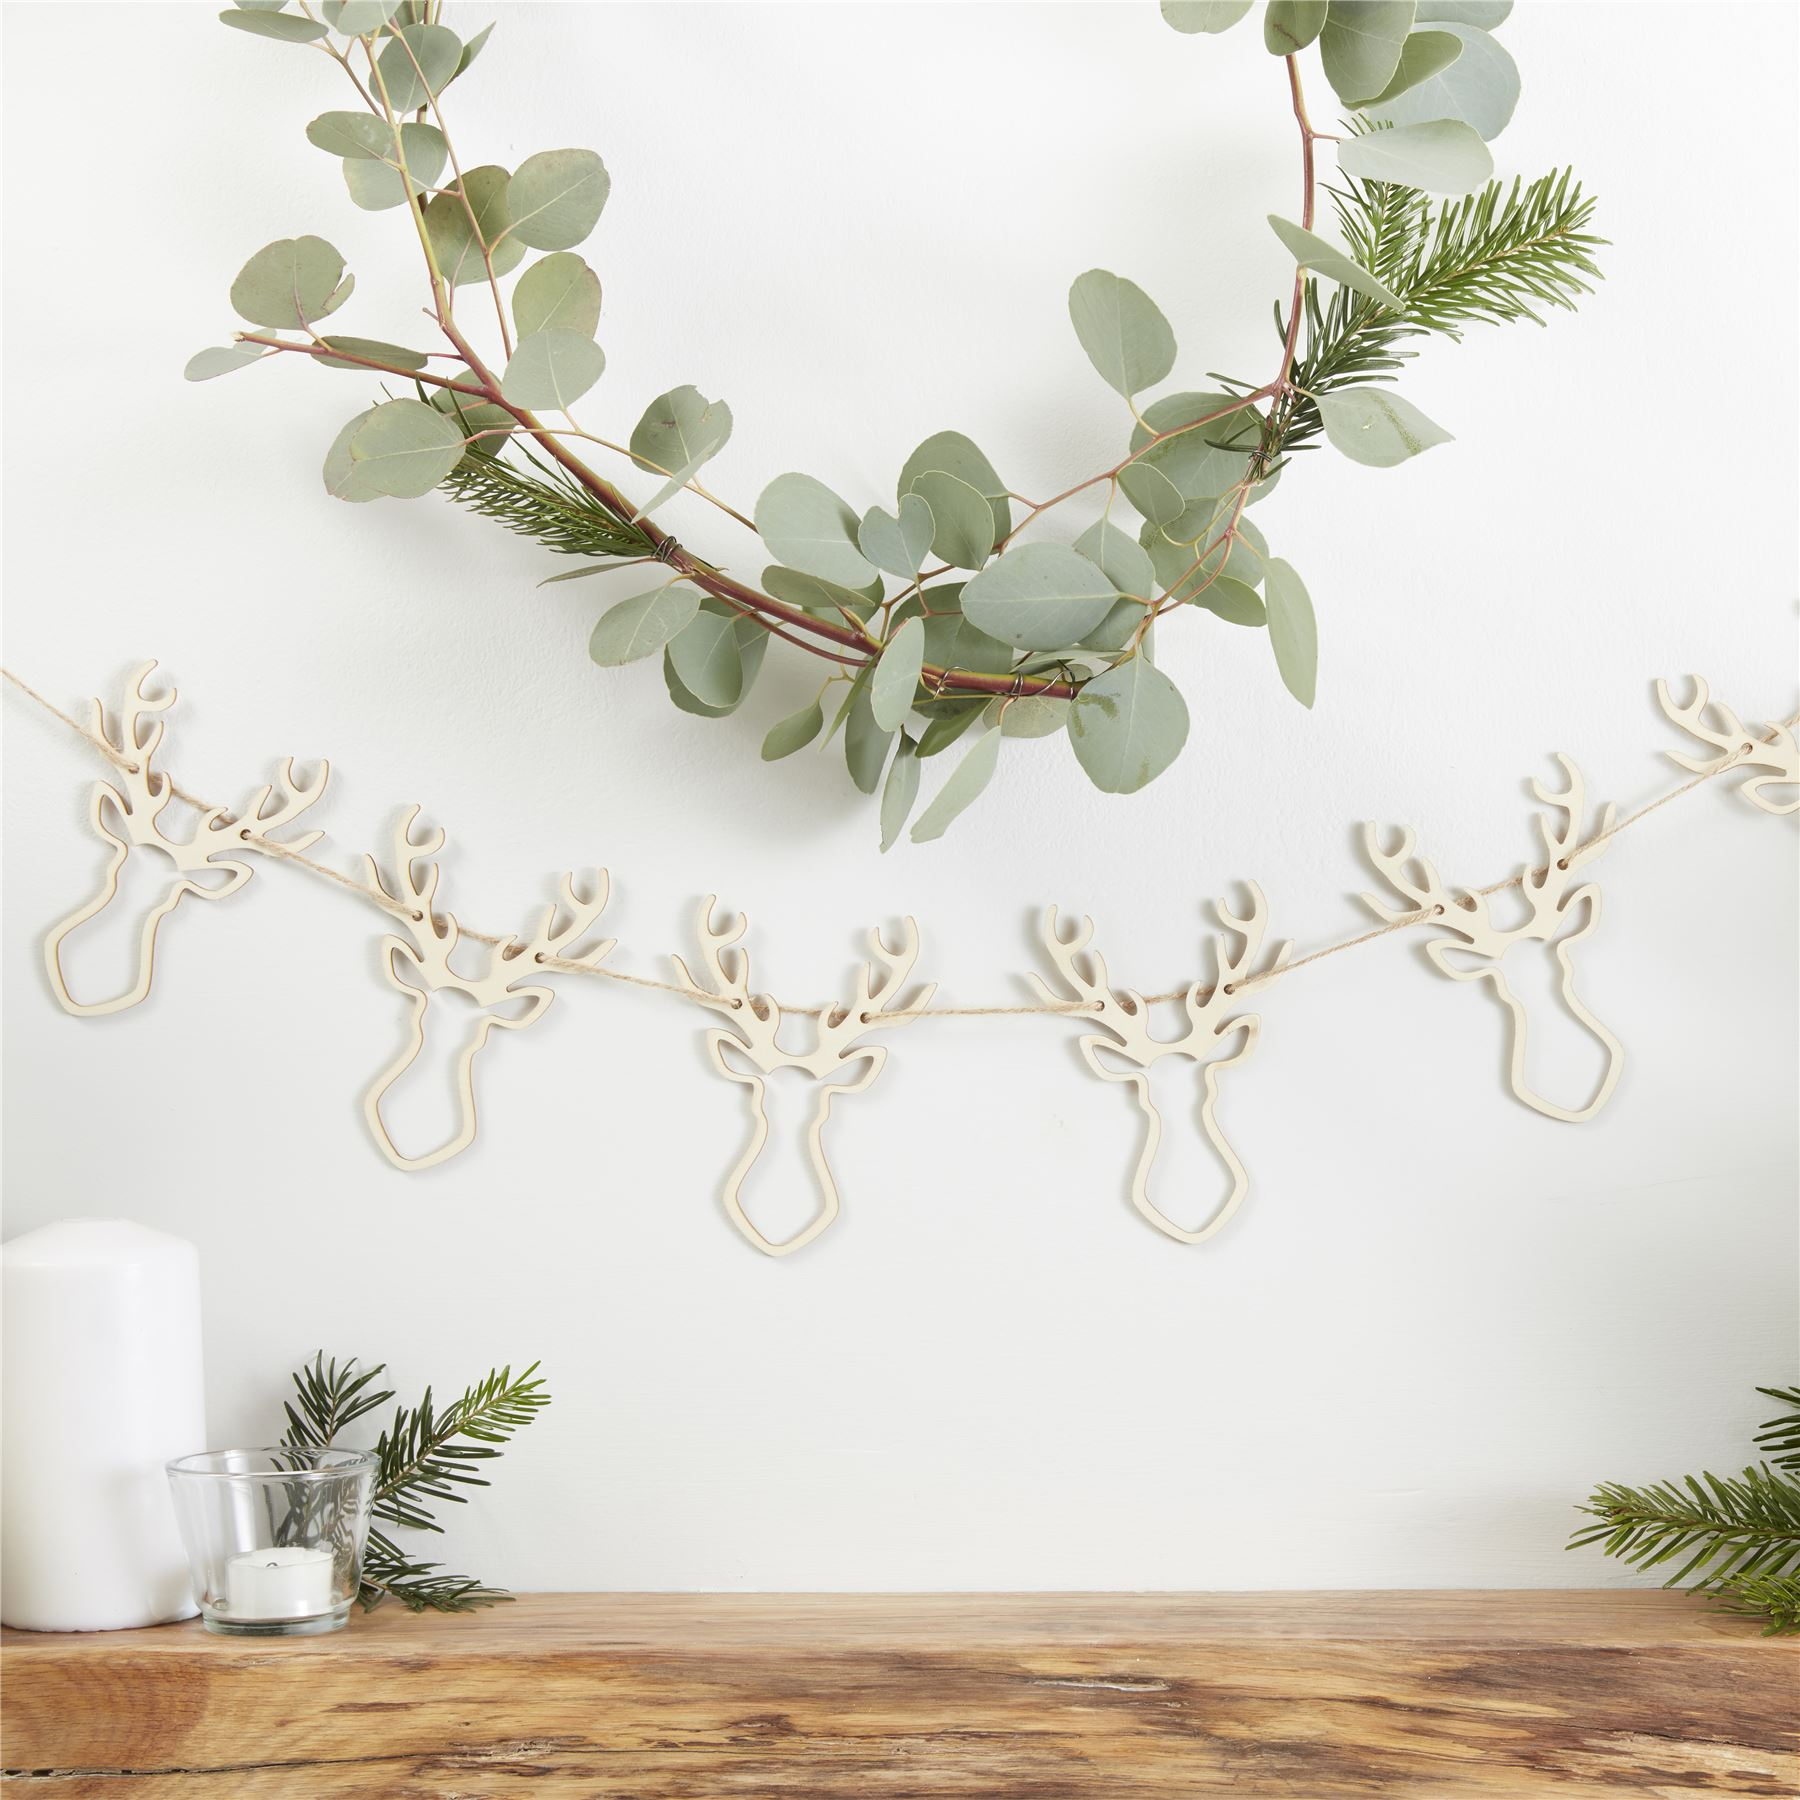 Ginger Ray Rustic Nordic Christmas Xmas Natural Giftwrap Decorations ...